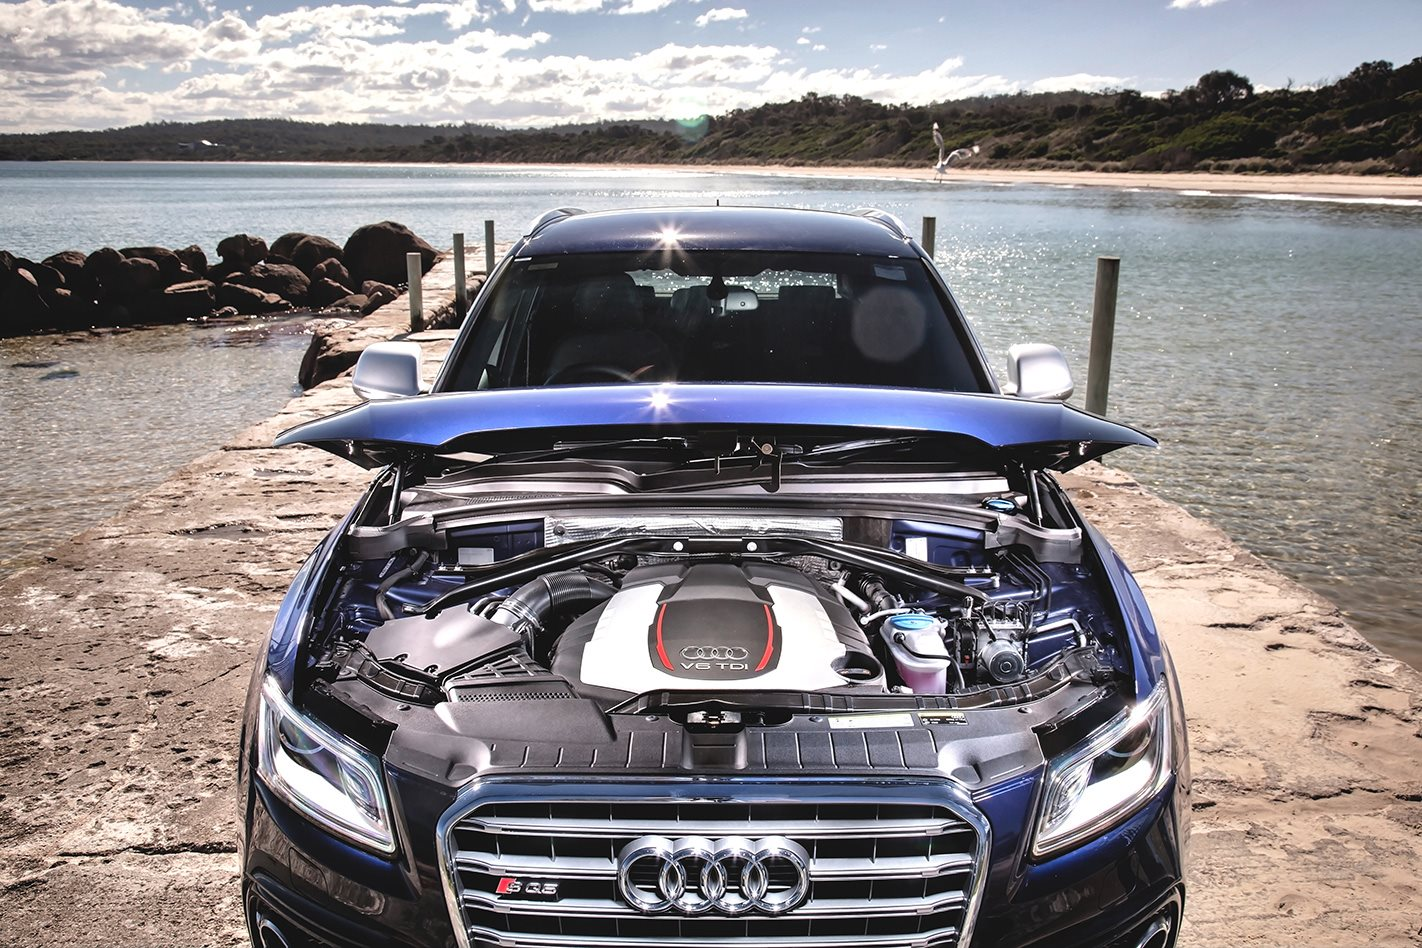 Audi SQ5 engine.jpg